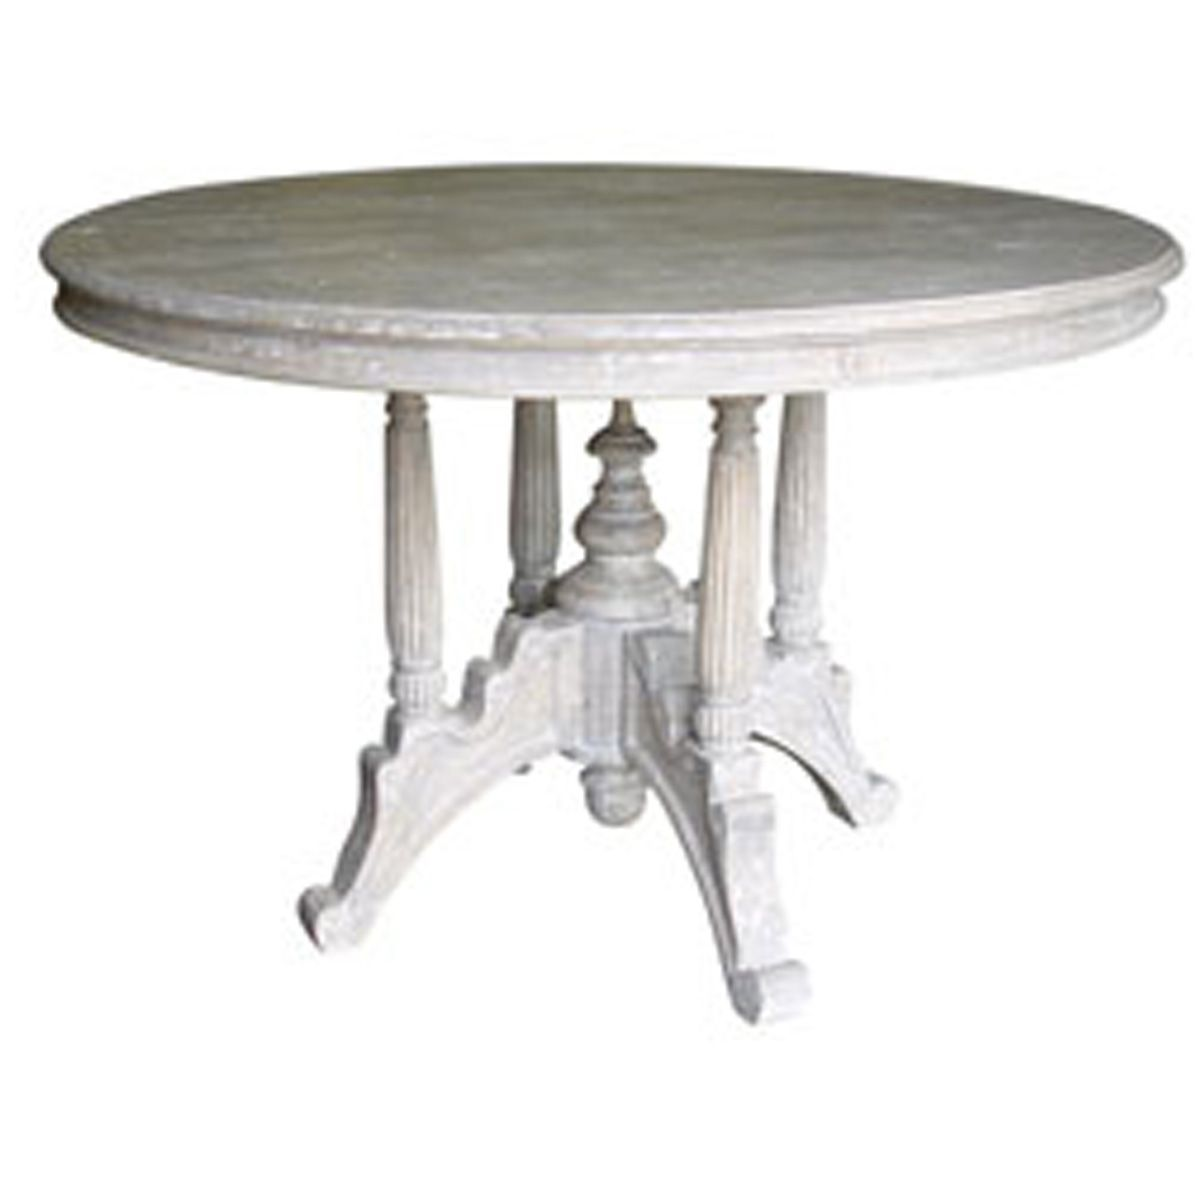 Raffles Cottage Style Round Dining Table 46 W X 46D X 30H Interesting Round Dining Room Tables For Sale Review